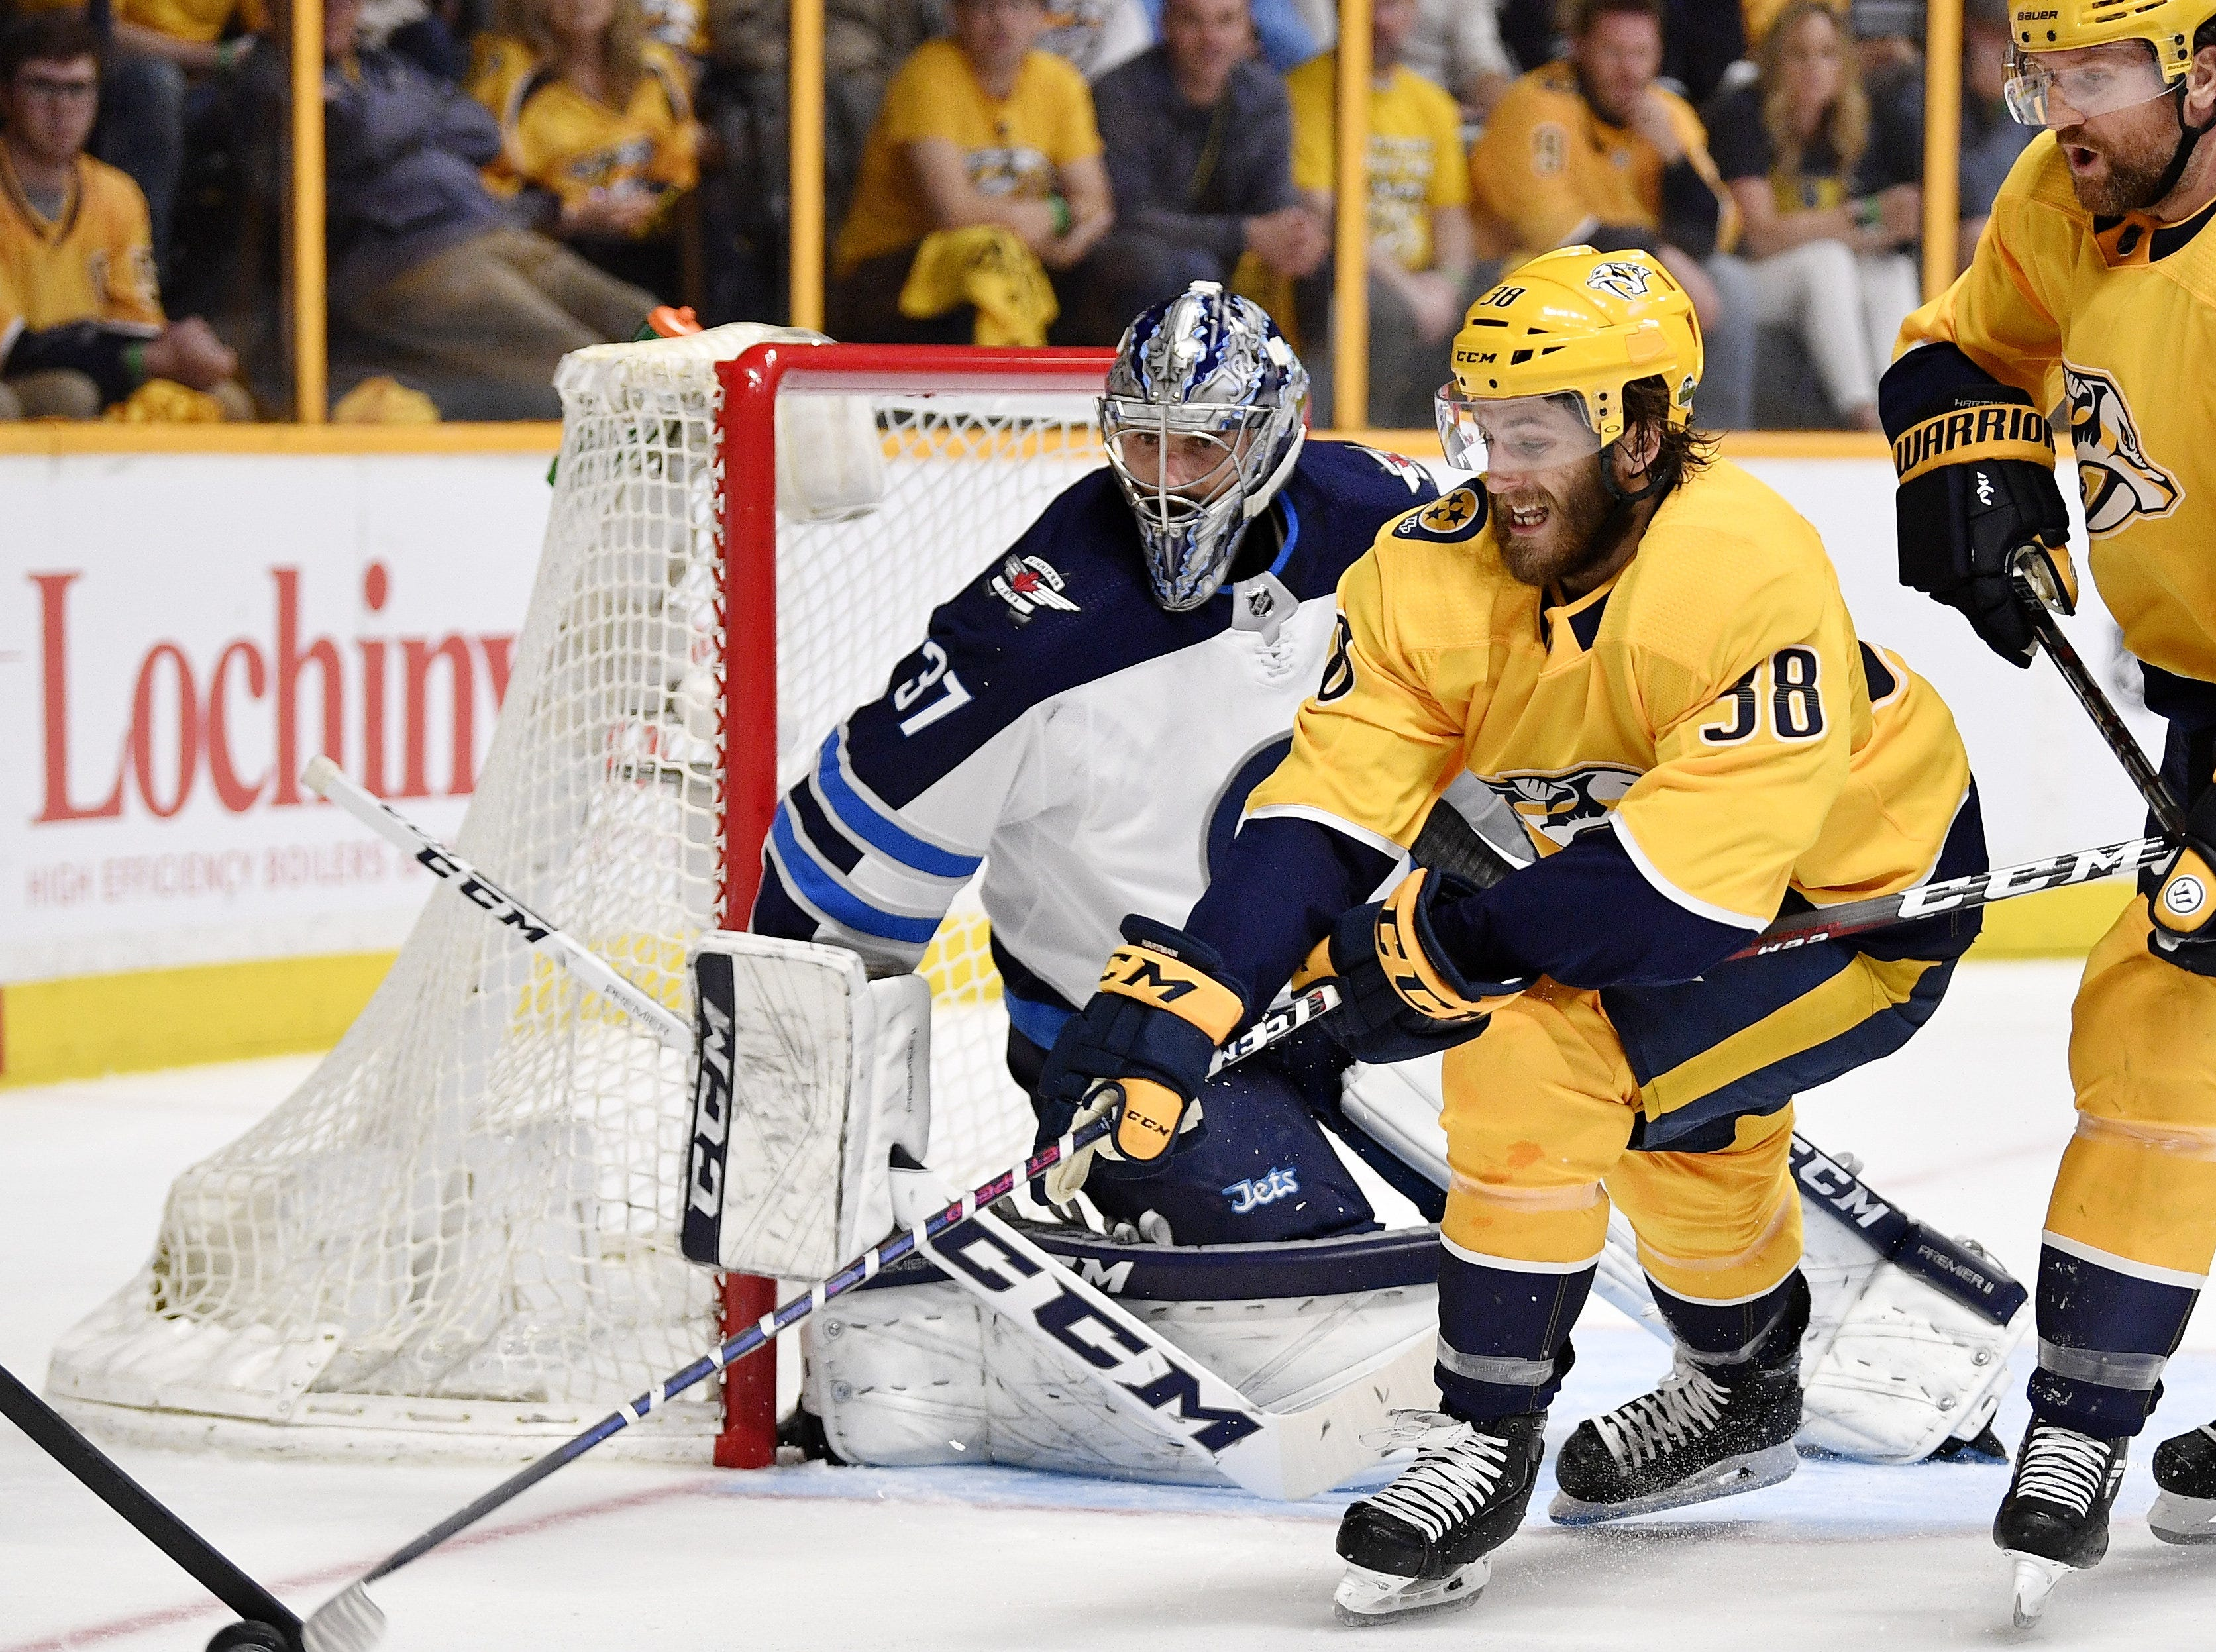 #38, Ryan Hartman, Forward - Nashville Predators right wing Ryan Hartman (38) plays the puck in front of Winnipeg Jets goaltender Connor Hellebuyck (37) during the first period of Game 7 of the second round NHL Stanley Cup Playoffs at Bridgestone Arena, Thursday, May 10, 2018, in Nashville, Tenn.